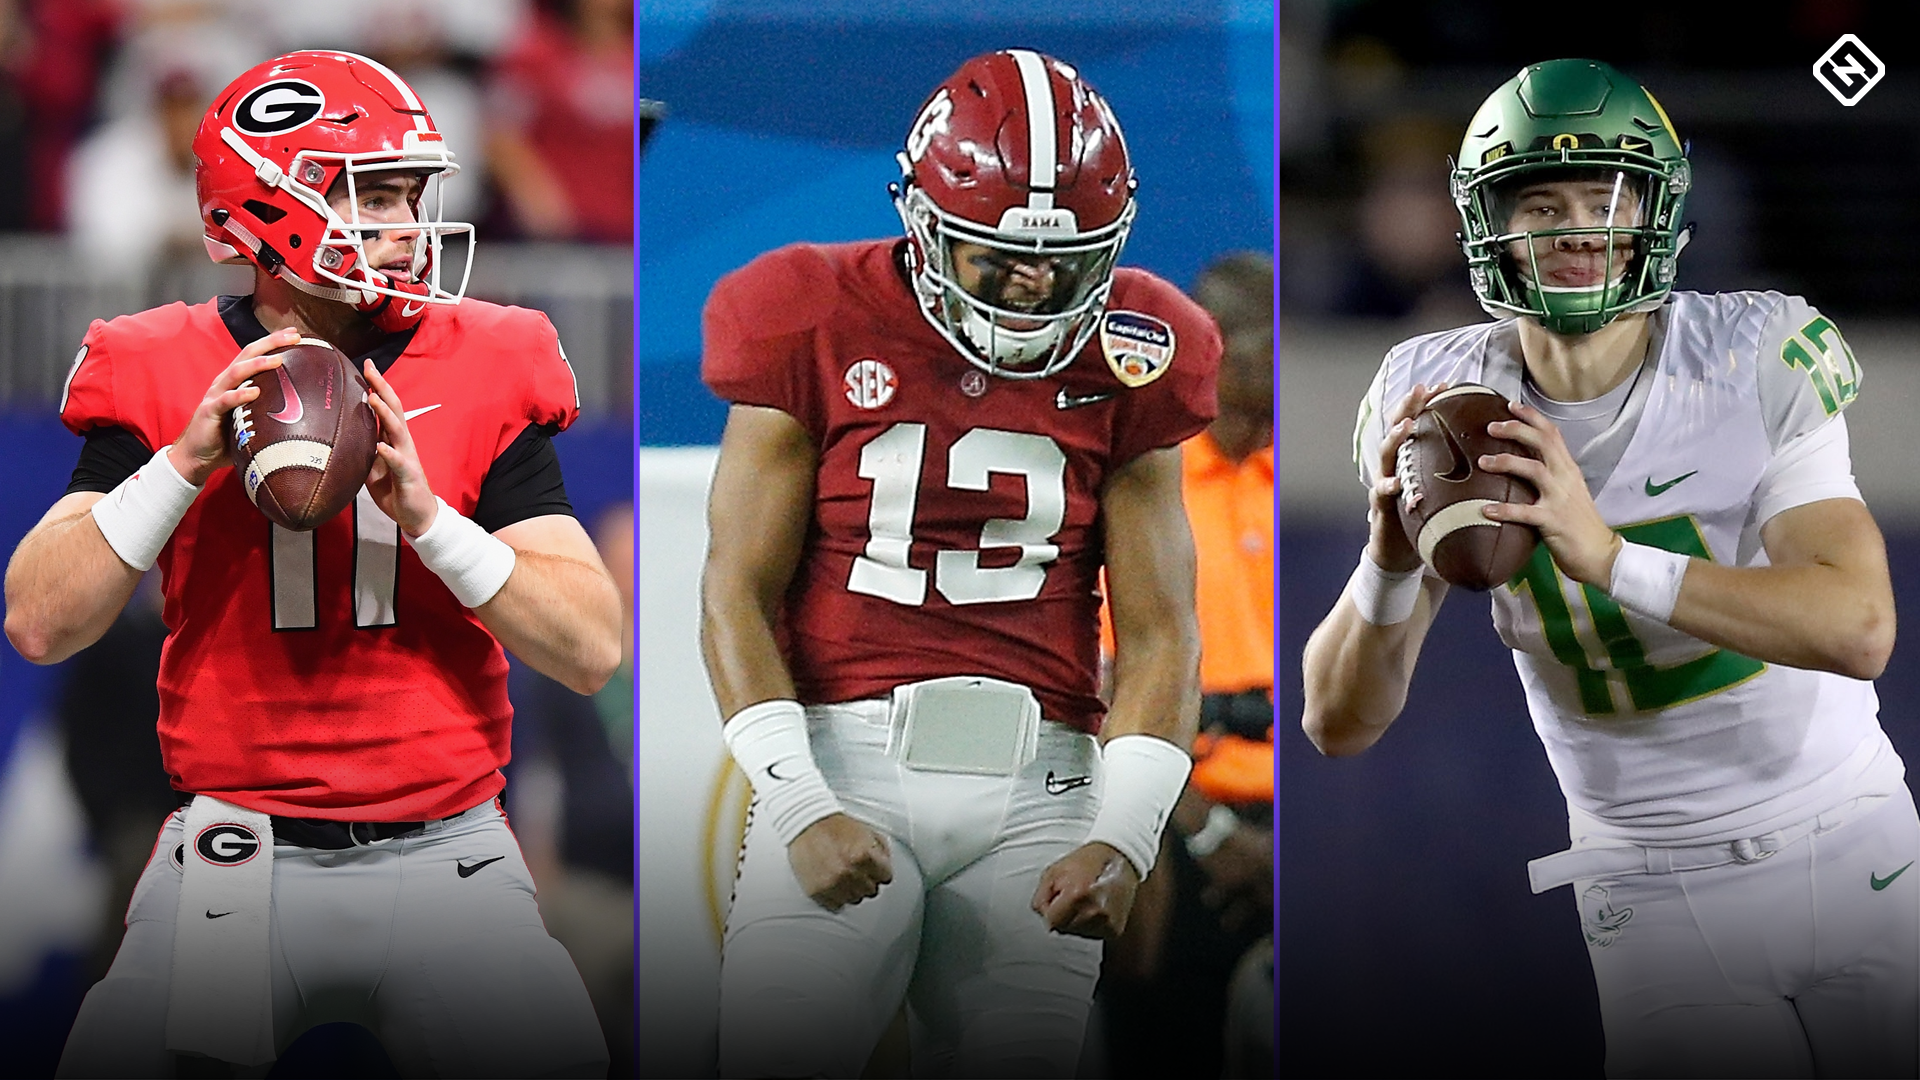 Best Available Nfl Draft 2020.Top 10 Qbs For 2020 Nfl Draft Tua Tagovailoa Justin